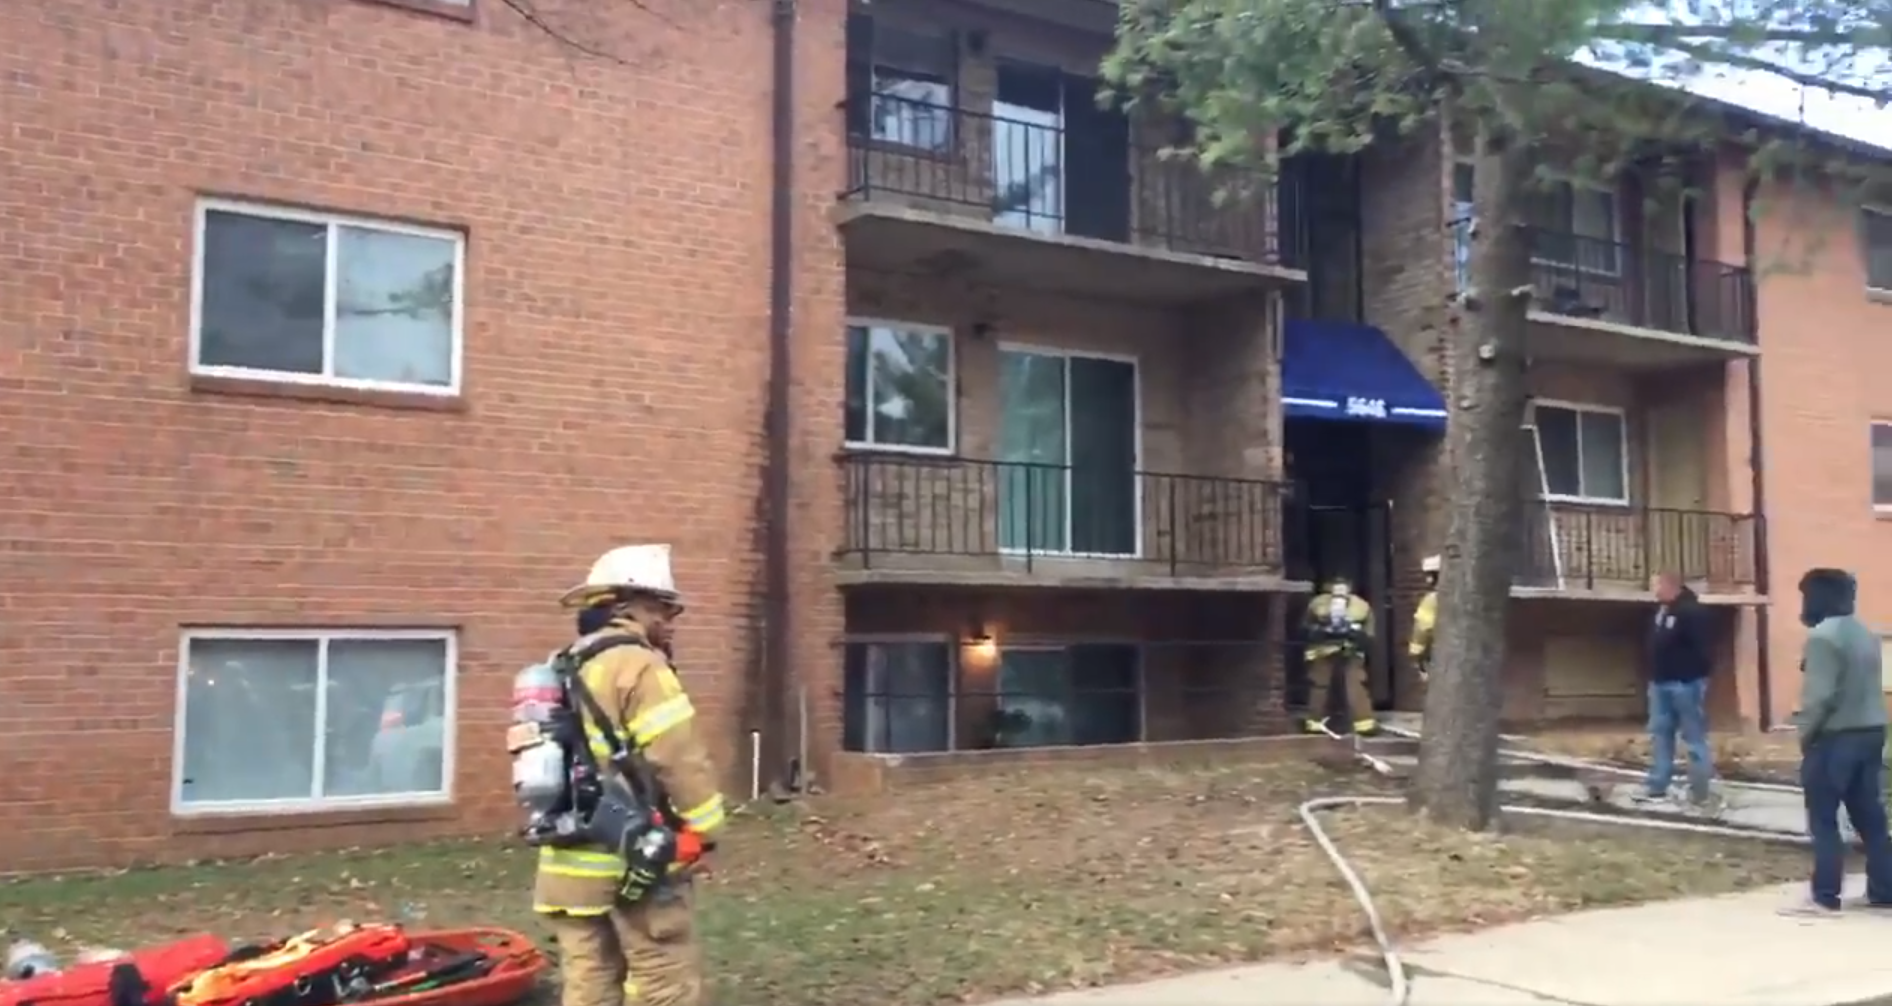 Firefighters are on the scene of a fire at an apartment building in Lanham, Md.{&amp;nbsp;} Thursday, Dec. 14, 2017{&amp;nbsp;}(Photo courtesy of Mark Brady/Prince George's County Fire Department)<p></p>